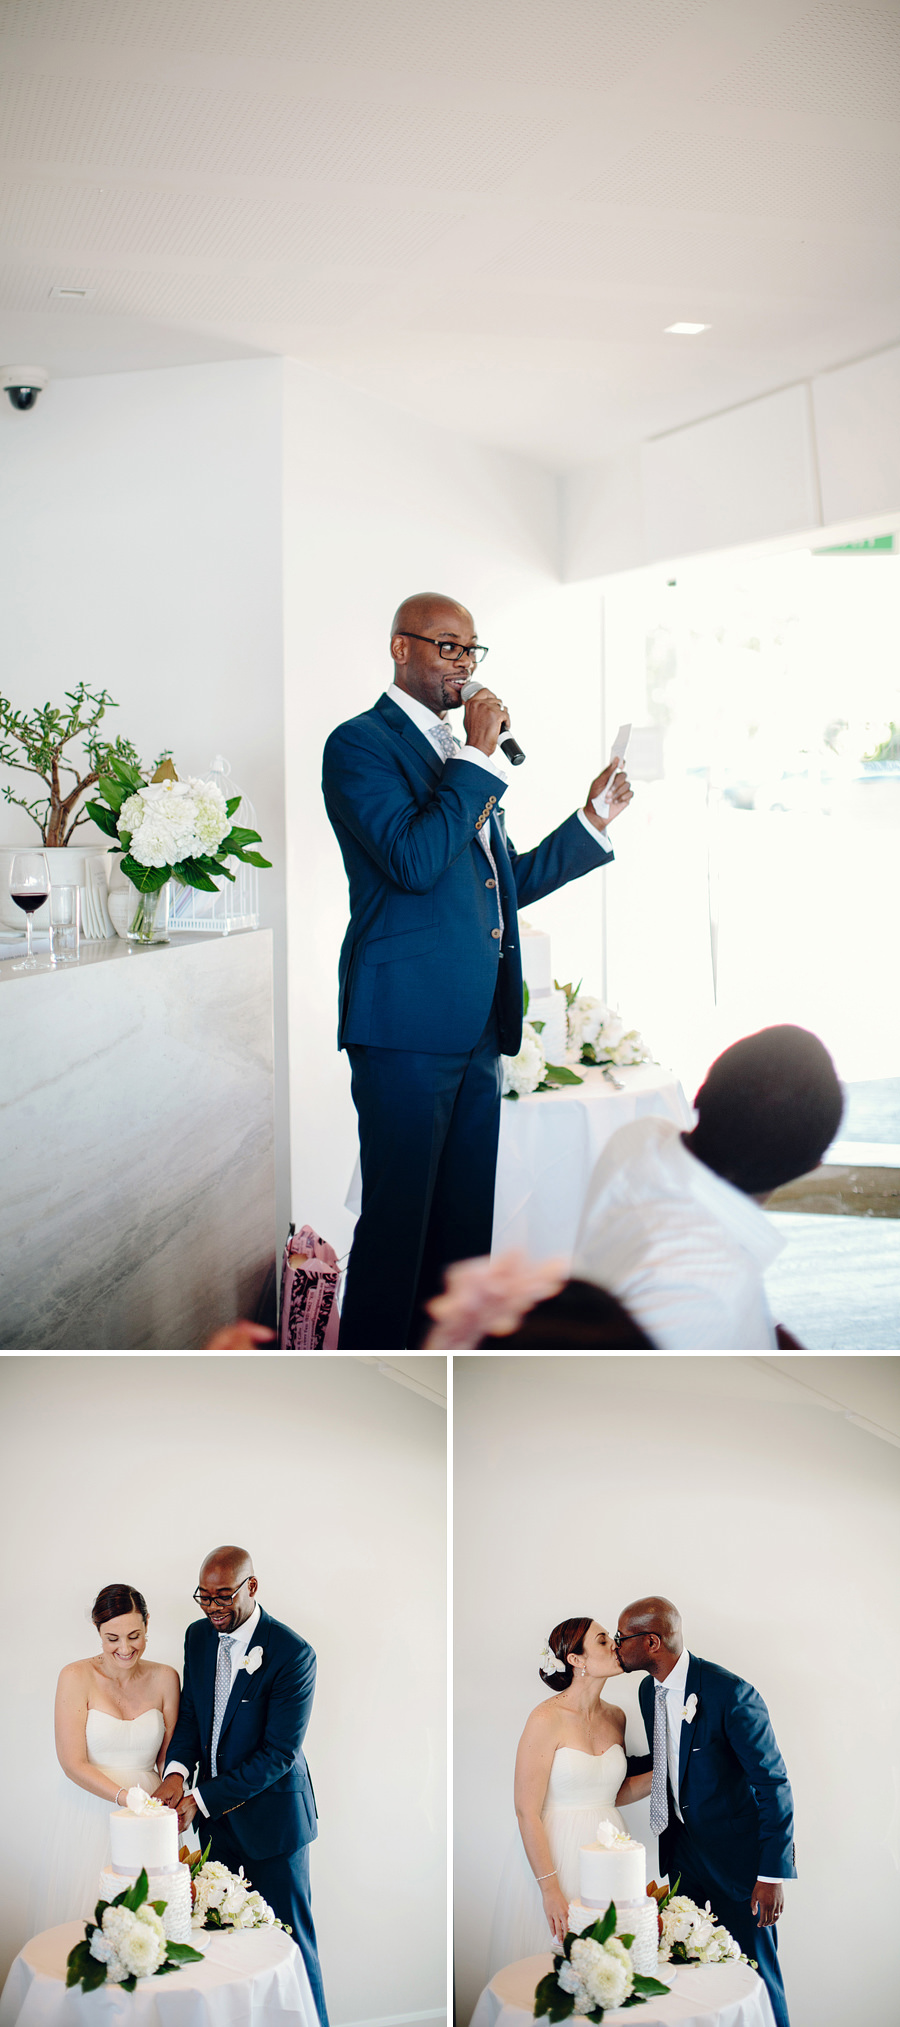 Elegant Wedding Photographer: Groom speech